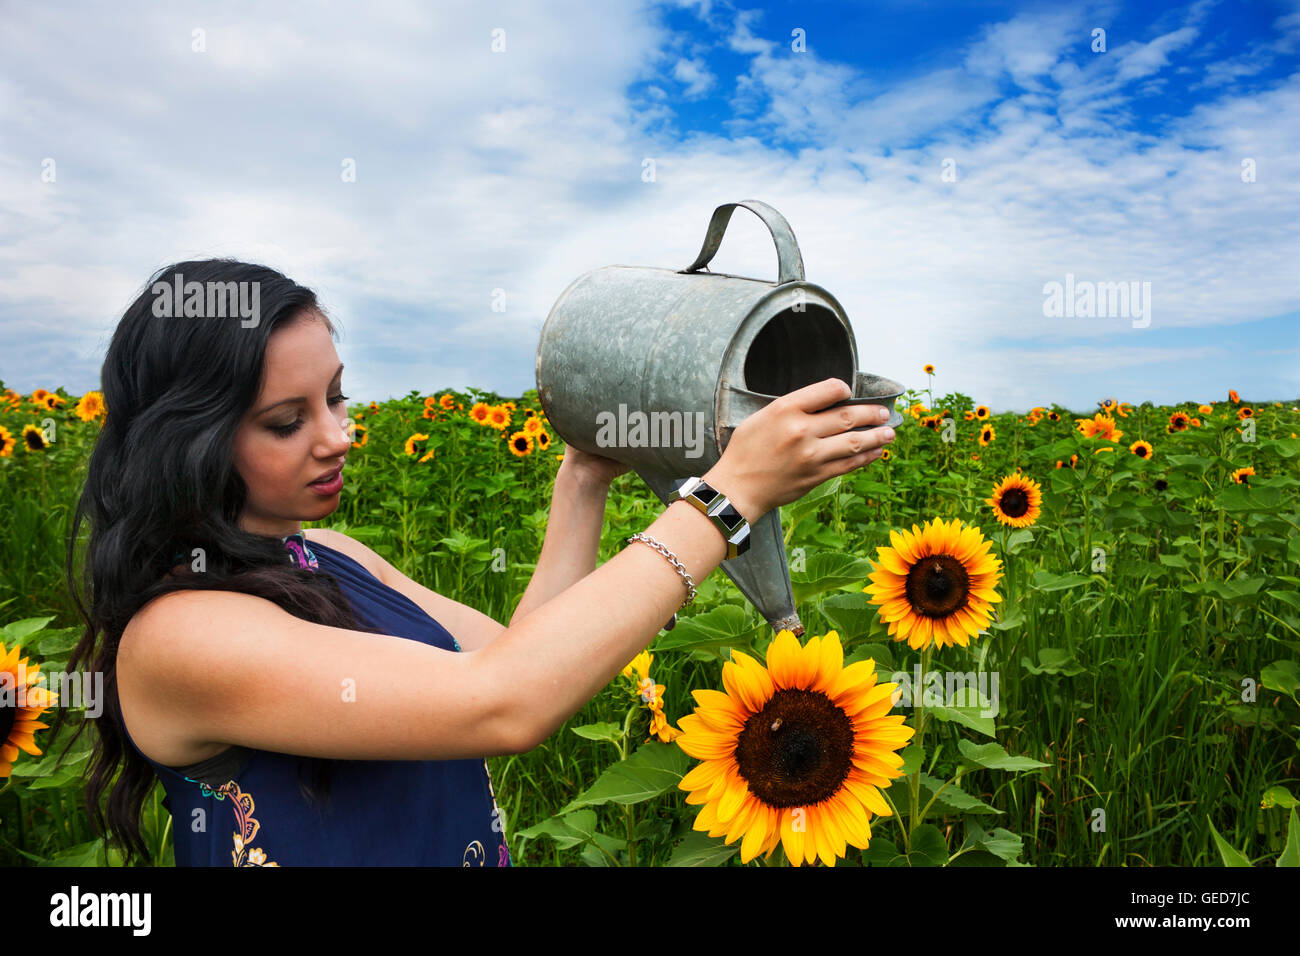 Pretty, young, brunette woman watering sunflowers in a sunflower field - Stock Image